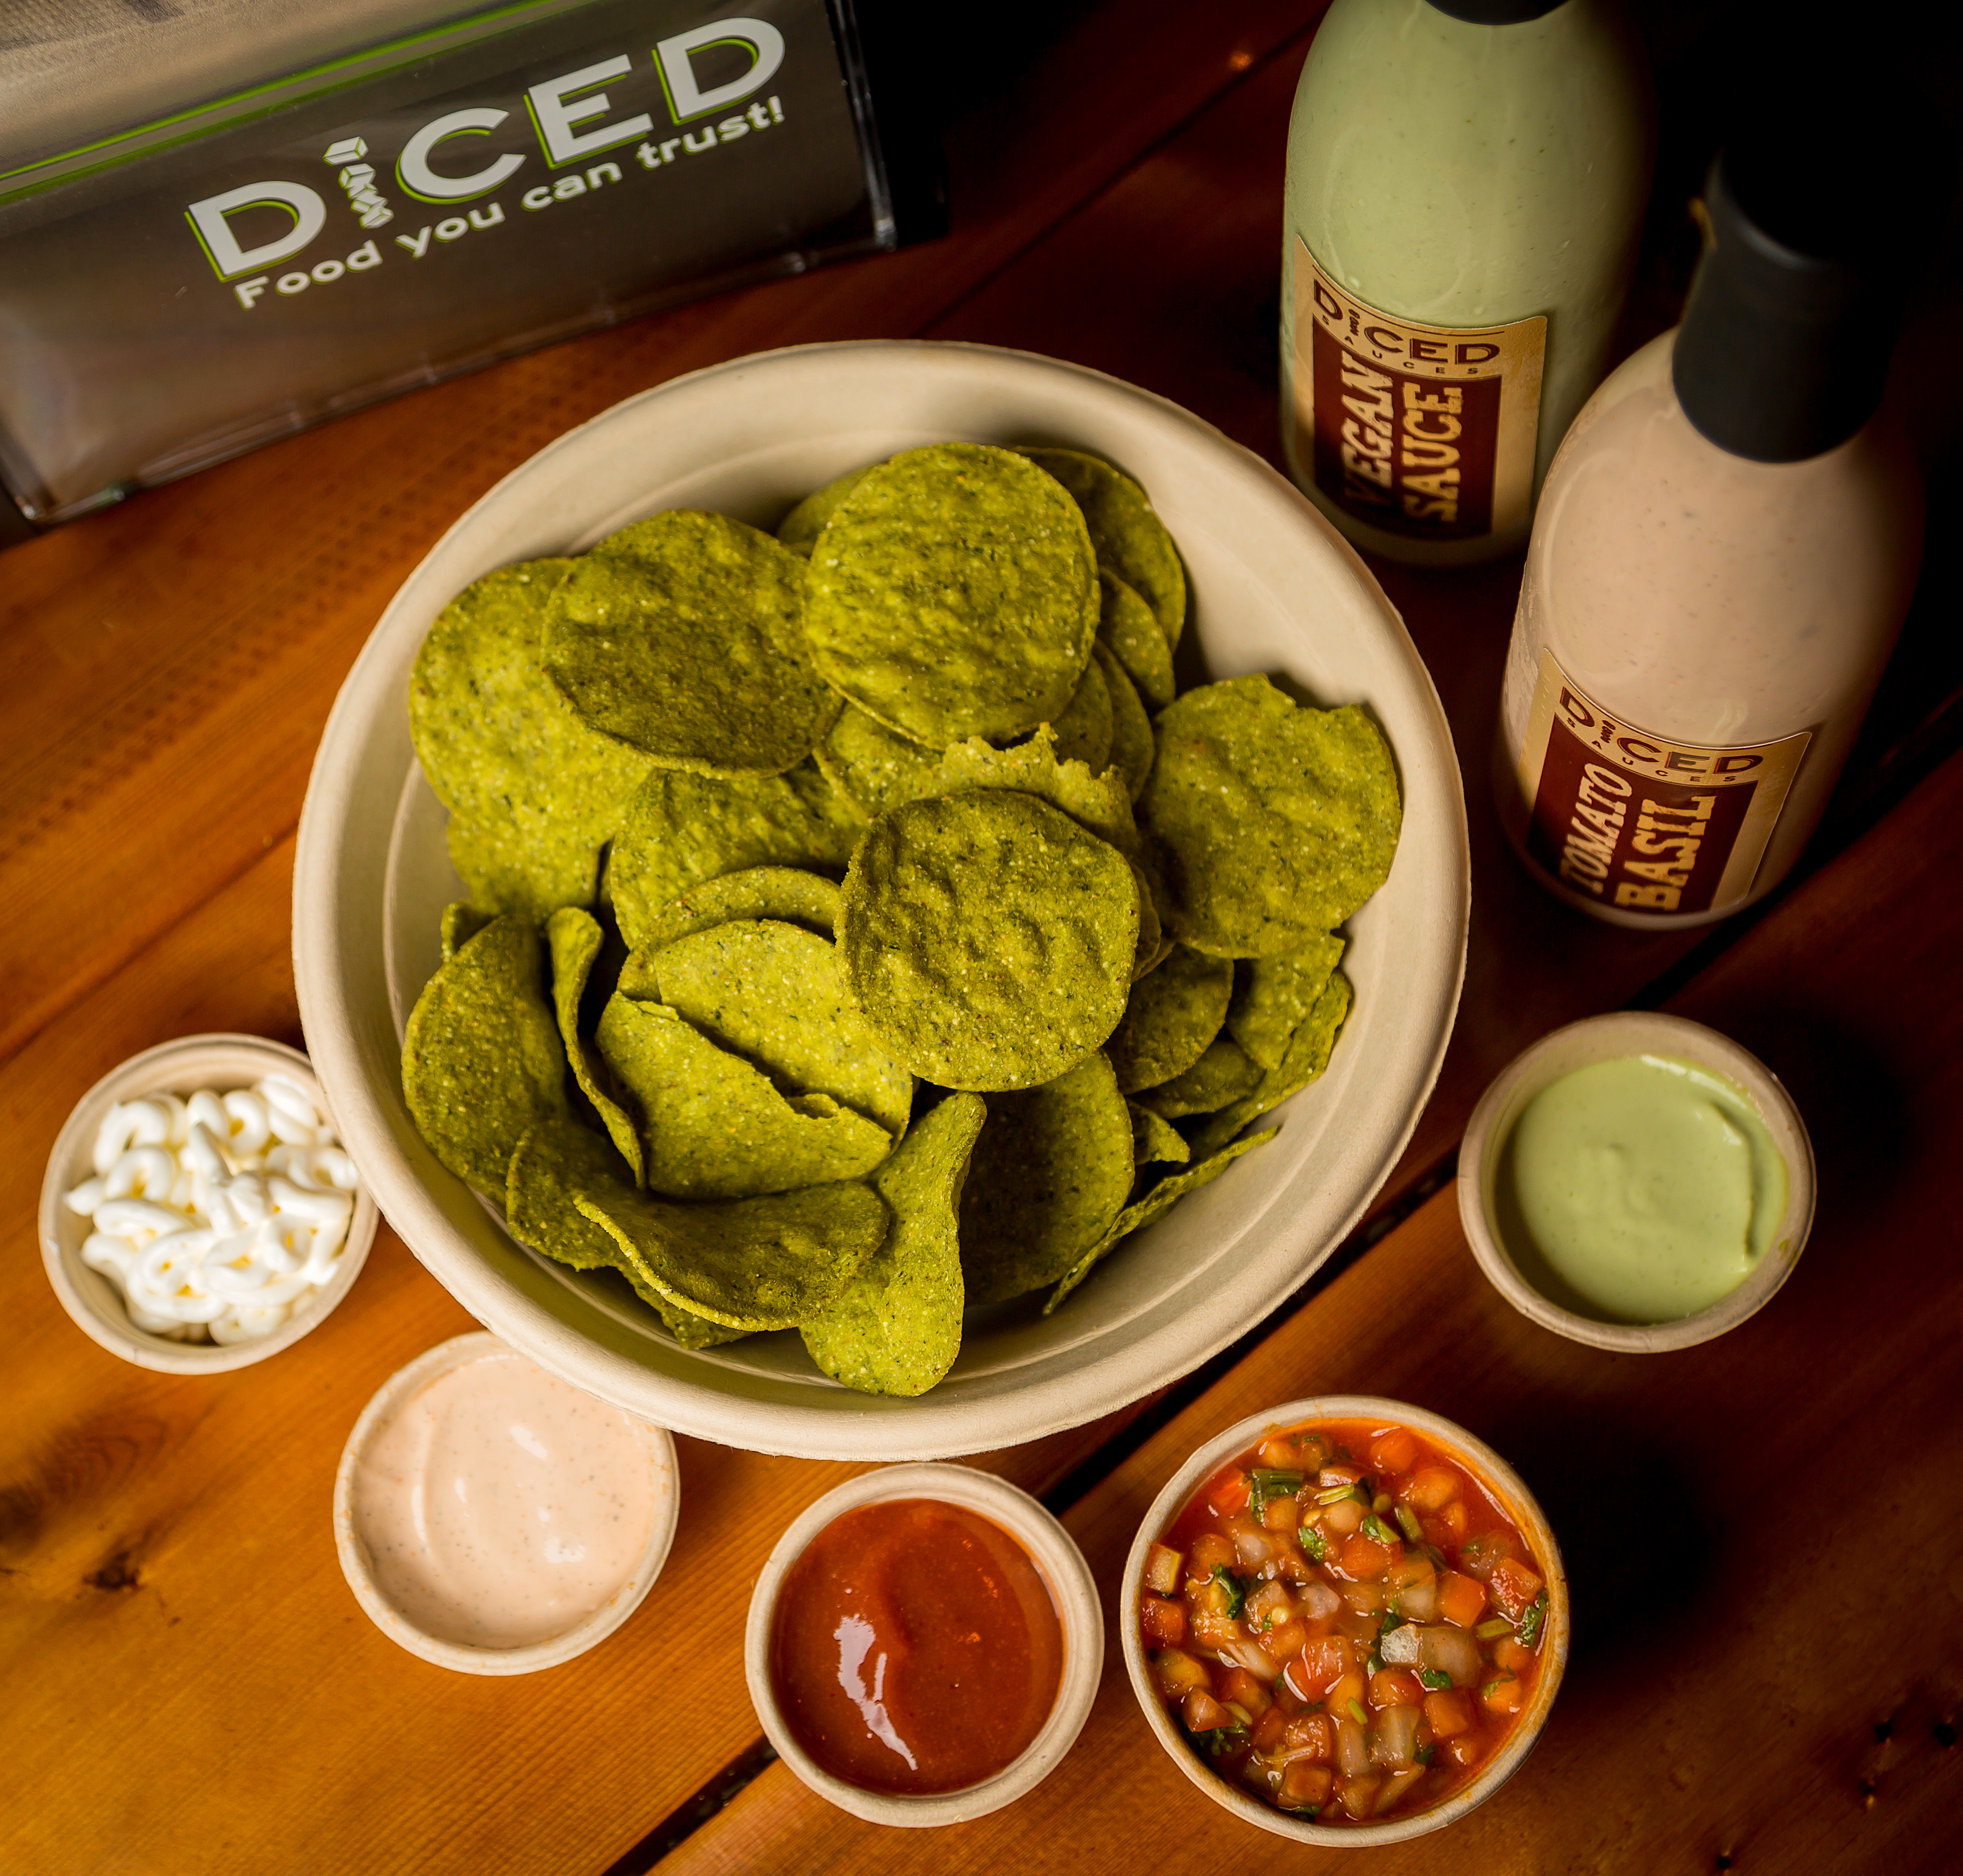 DICED, Jorge Martinez Photography, Jorge Martinez Photo Art, Art Miami, Product Photography, Jorge M